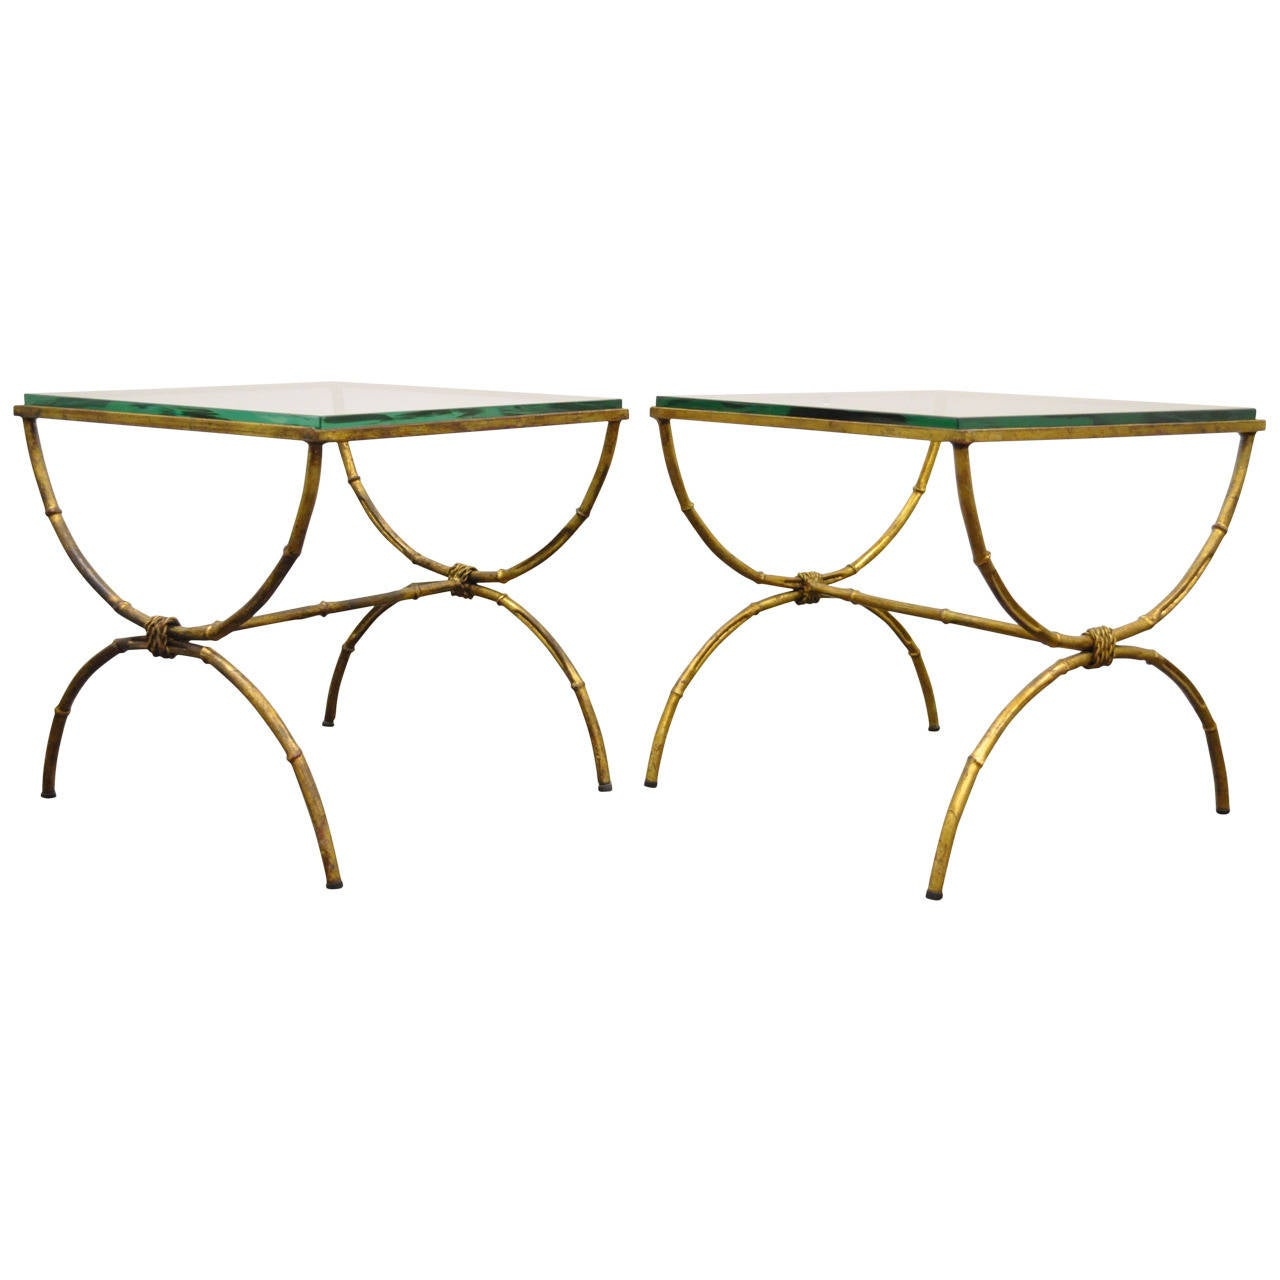 Pair of Italian Hollywood Regency Gold Gilt Metal and Glass Faux Bamboo Tables